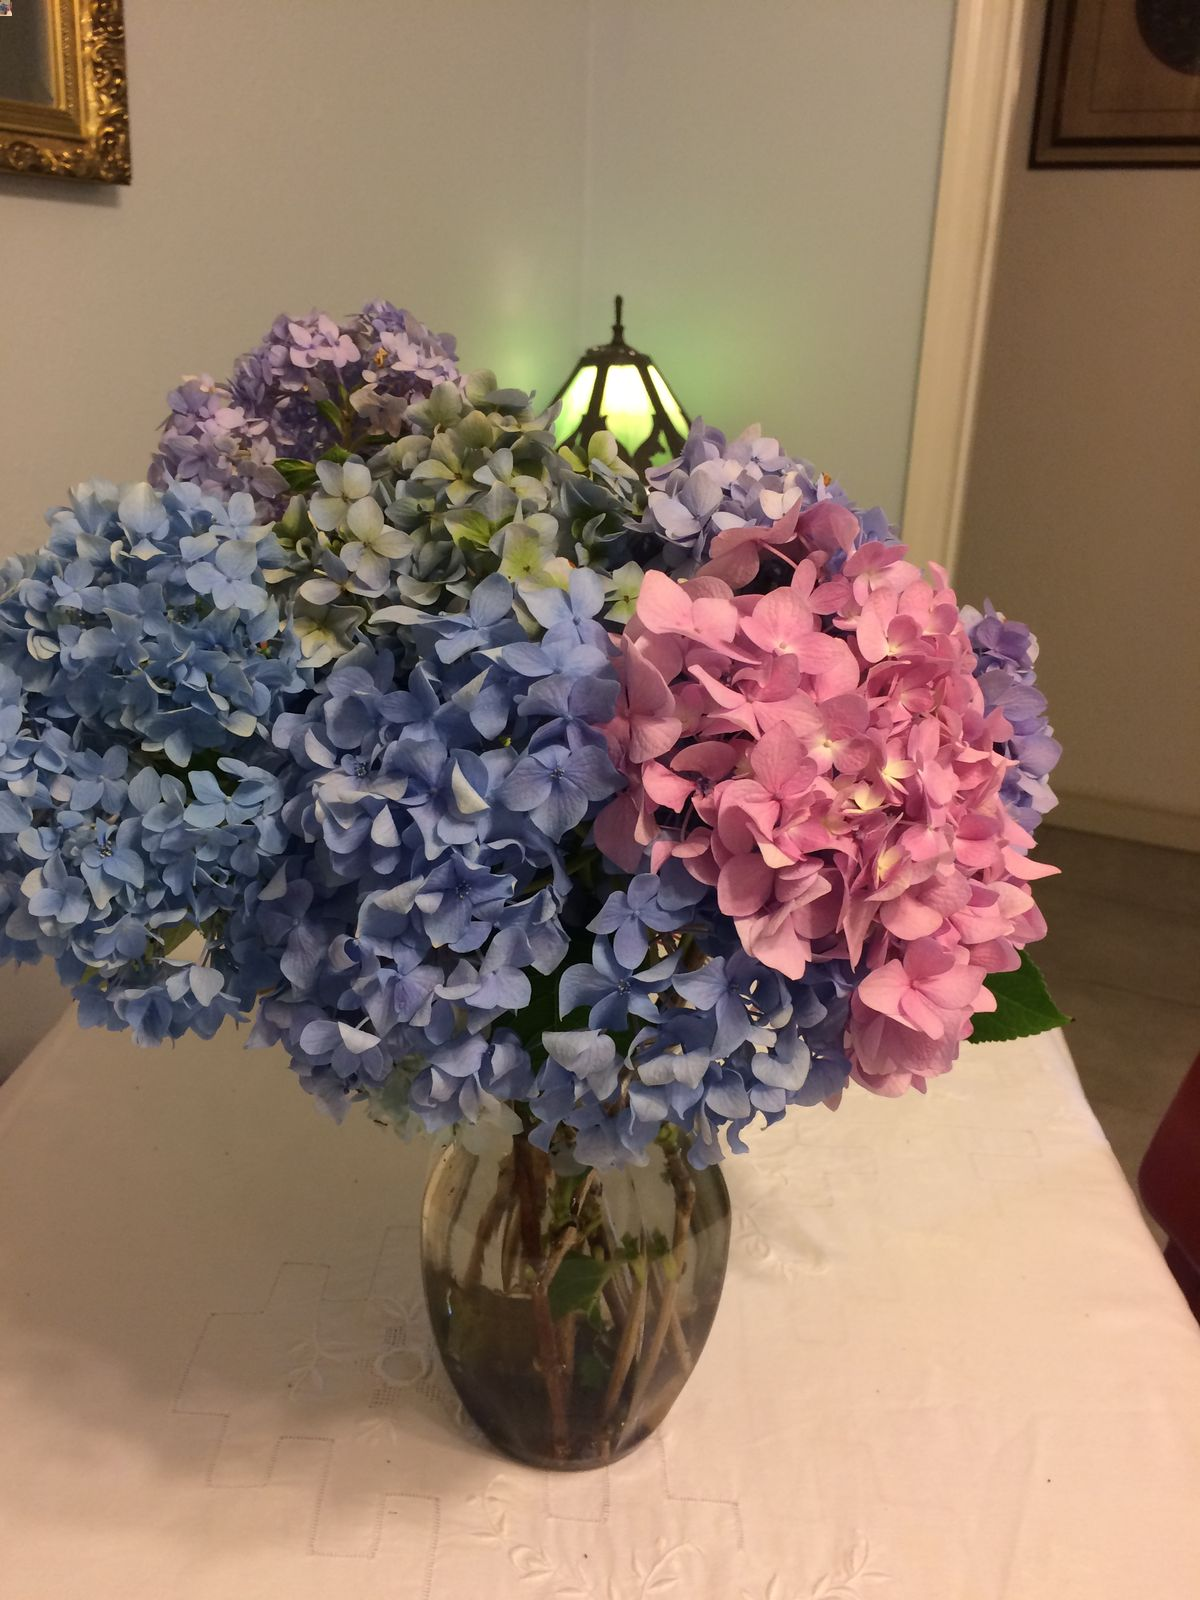 https://www.littleenglishguesthouse.com/hydrangeas-roses-and-more/